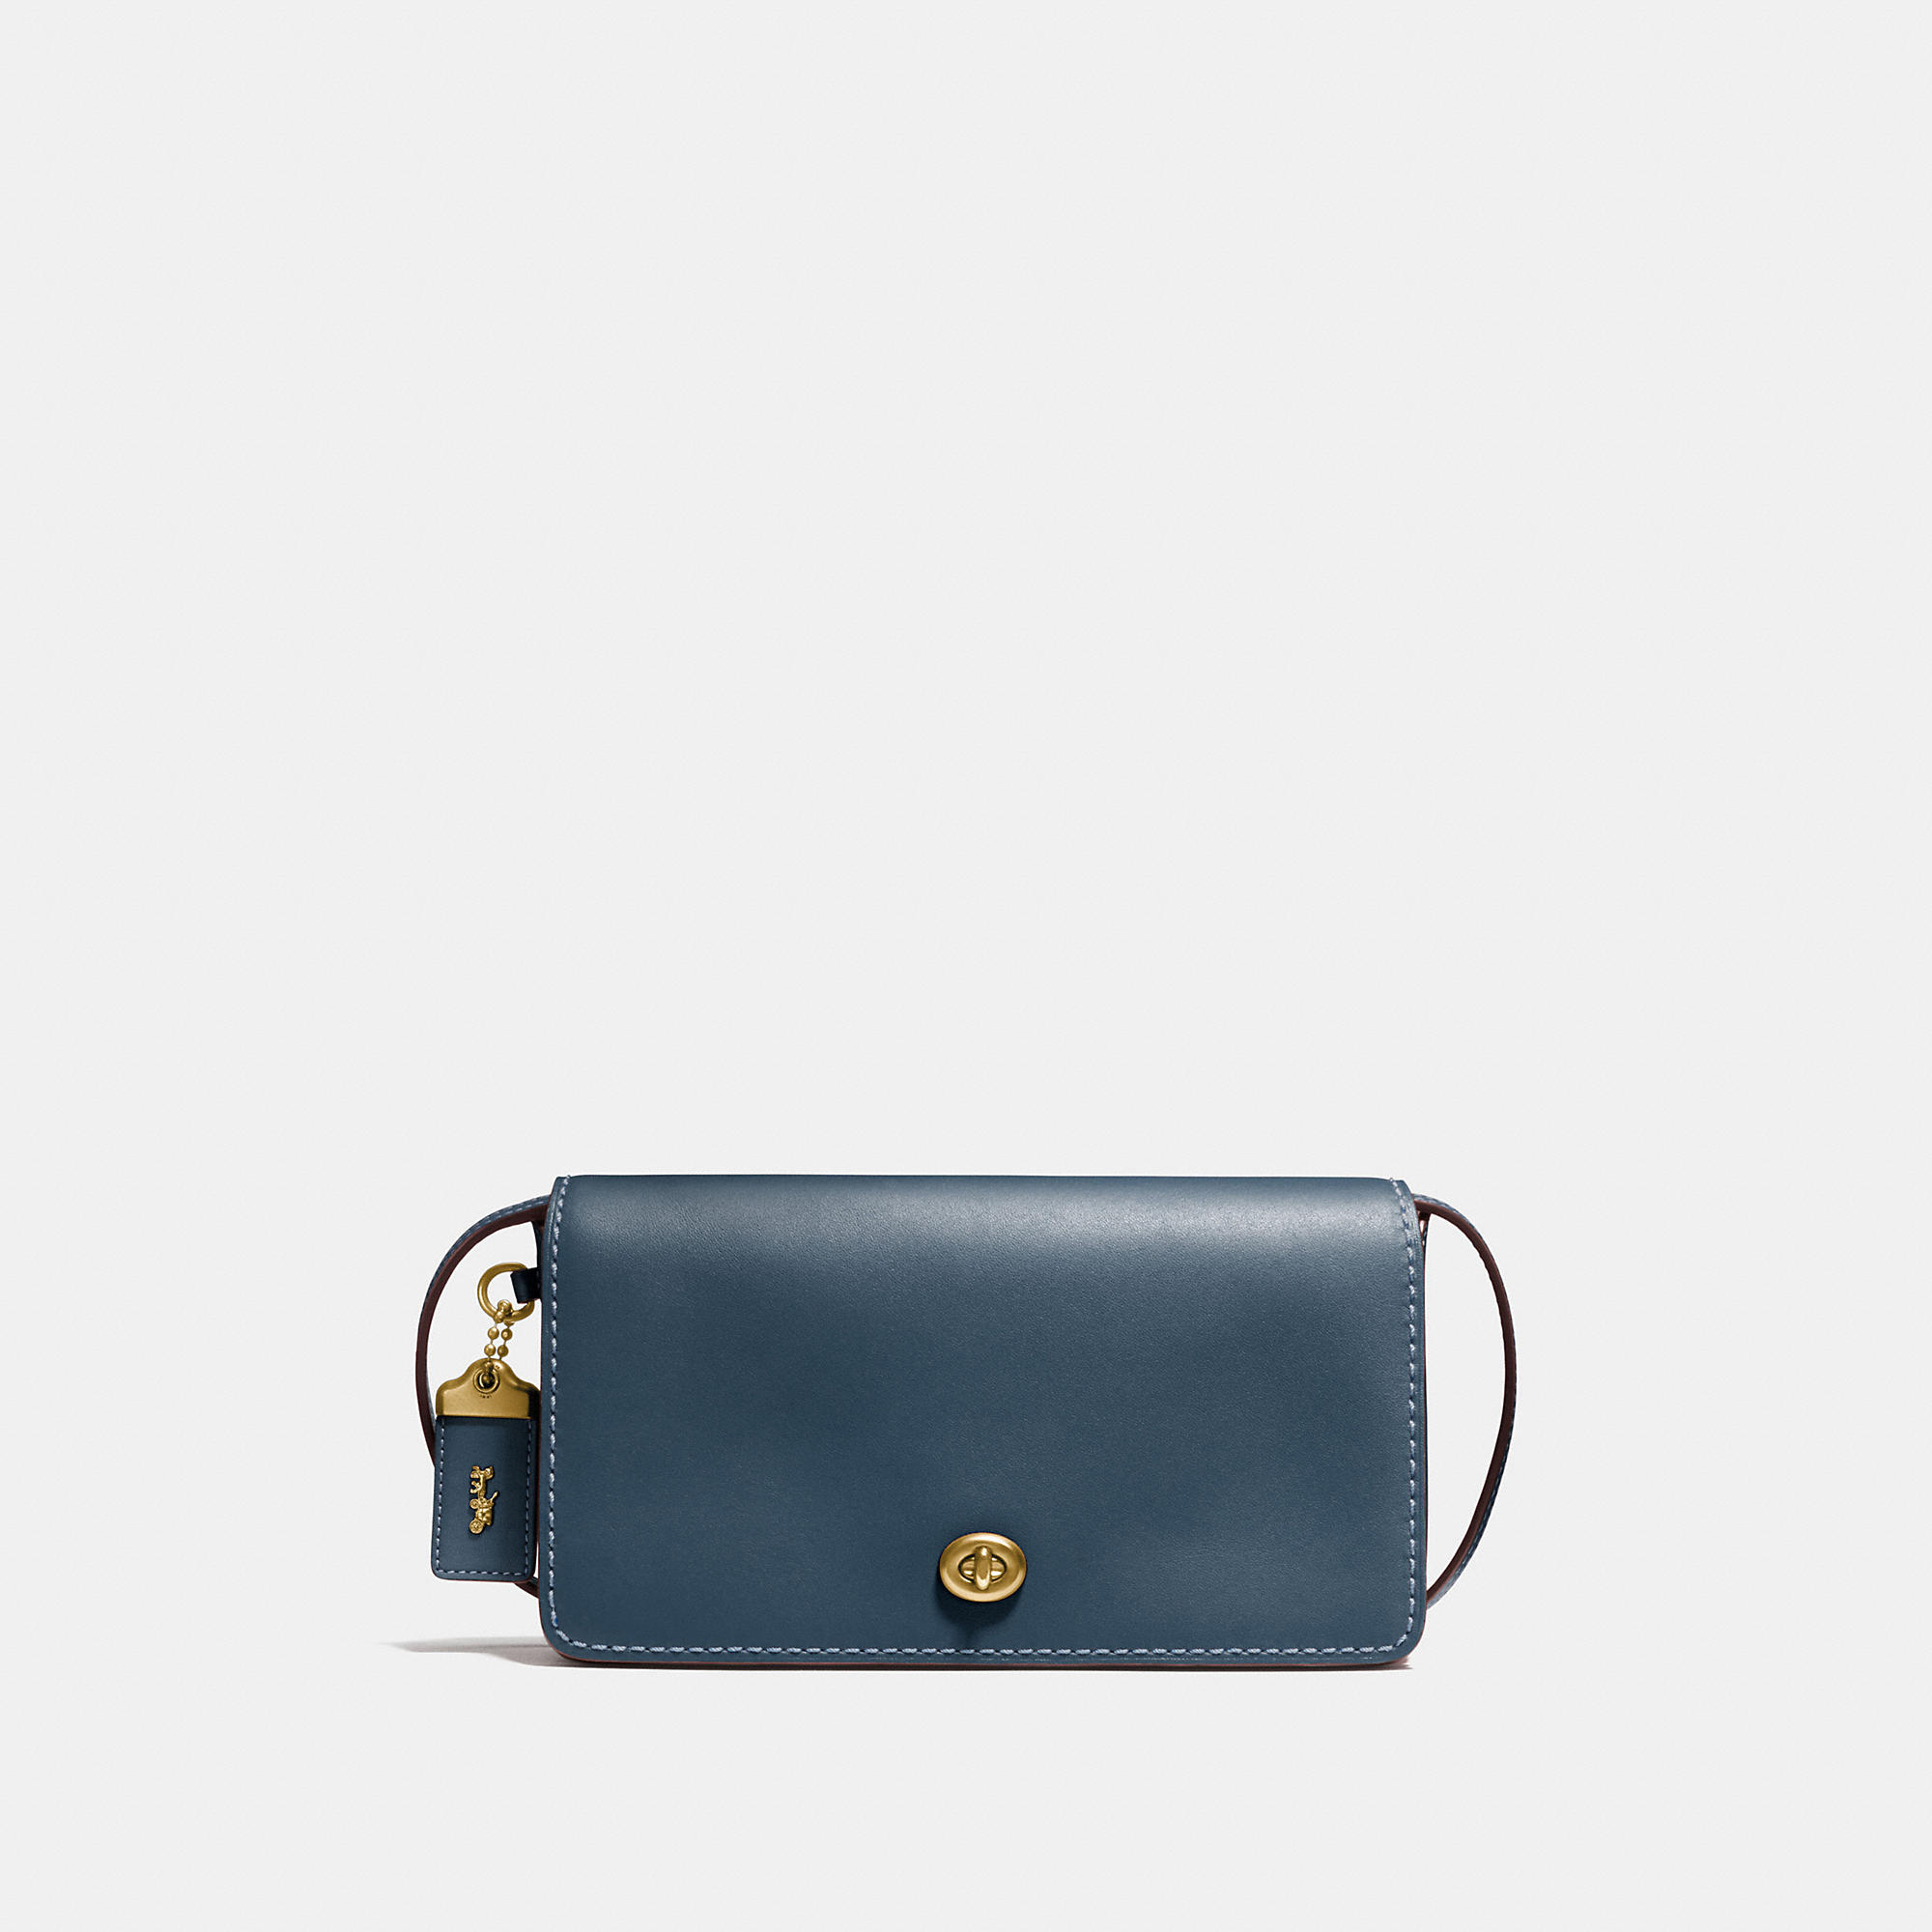 Coach 1941 Dinky In Glovetanned Leather